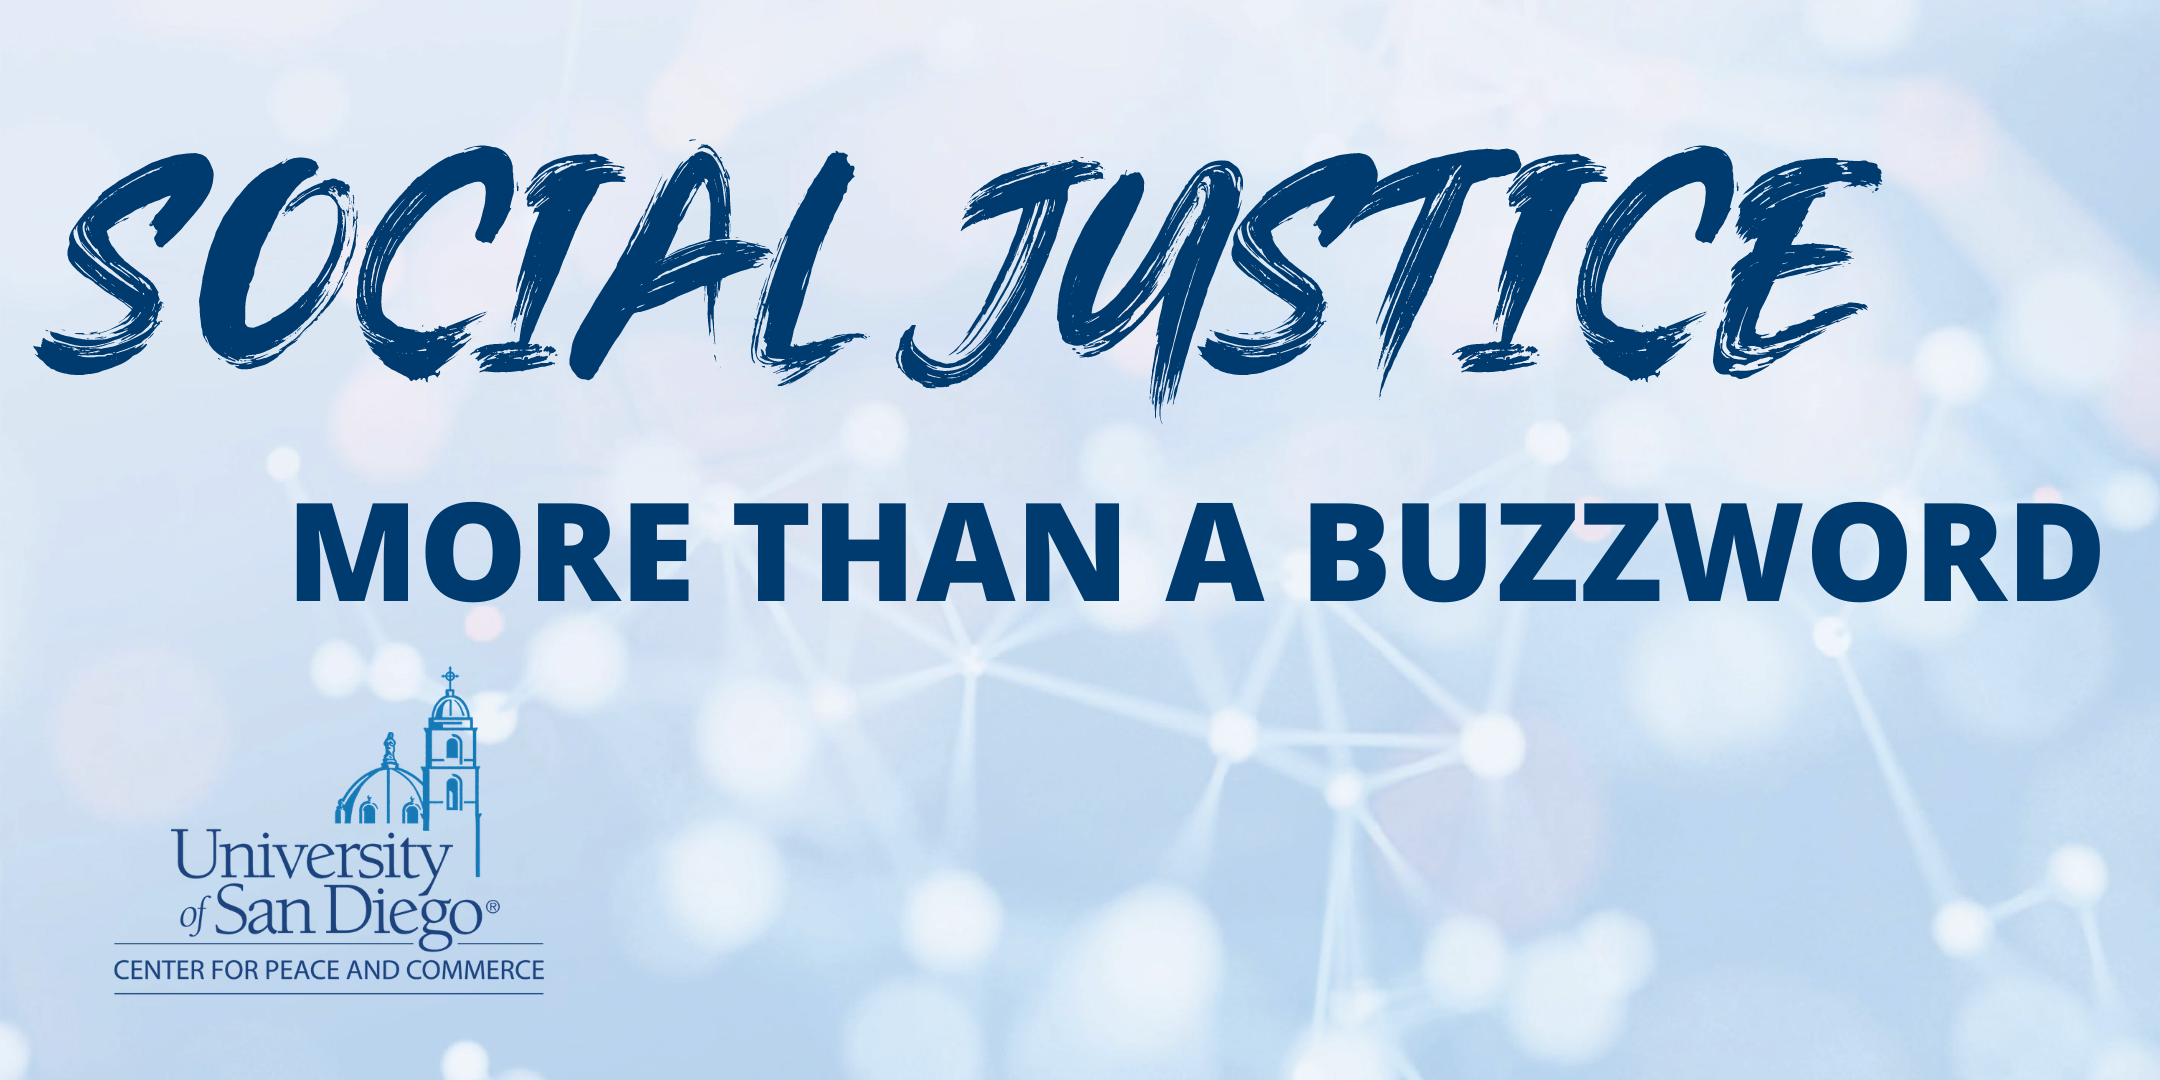 Event title, Social Justice, More than a Buzzword on light blue graphic